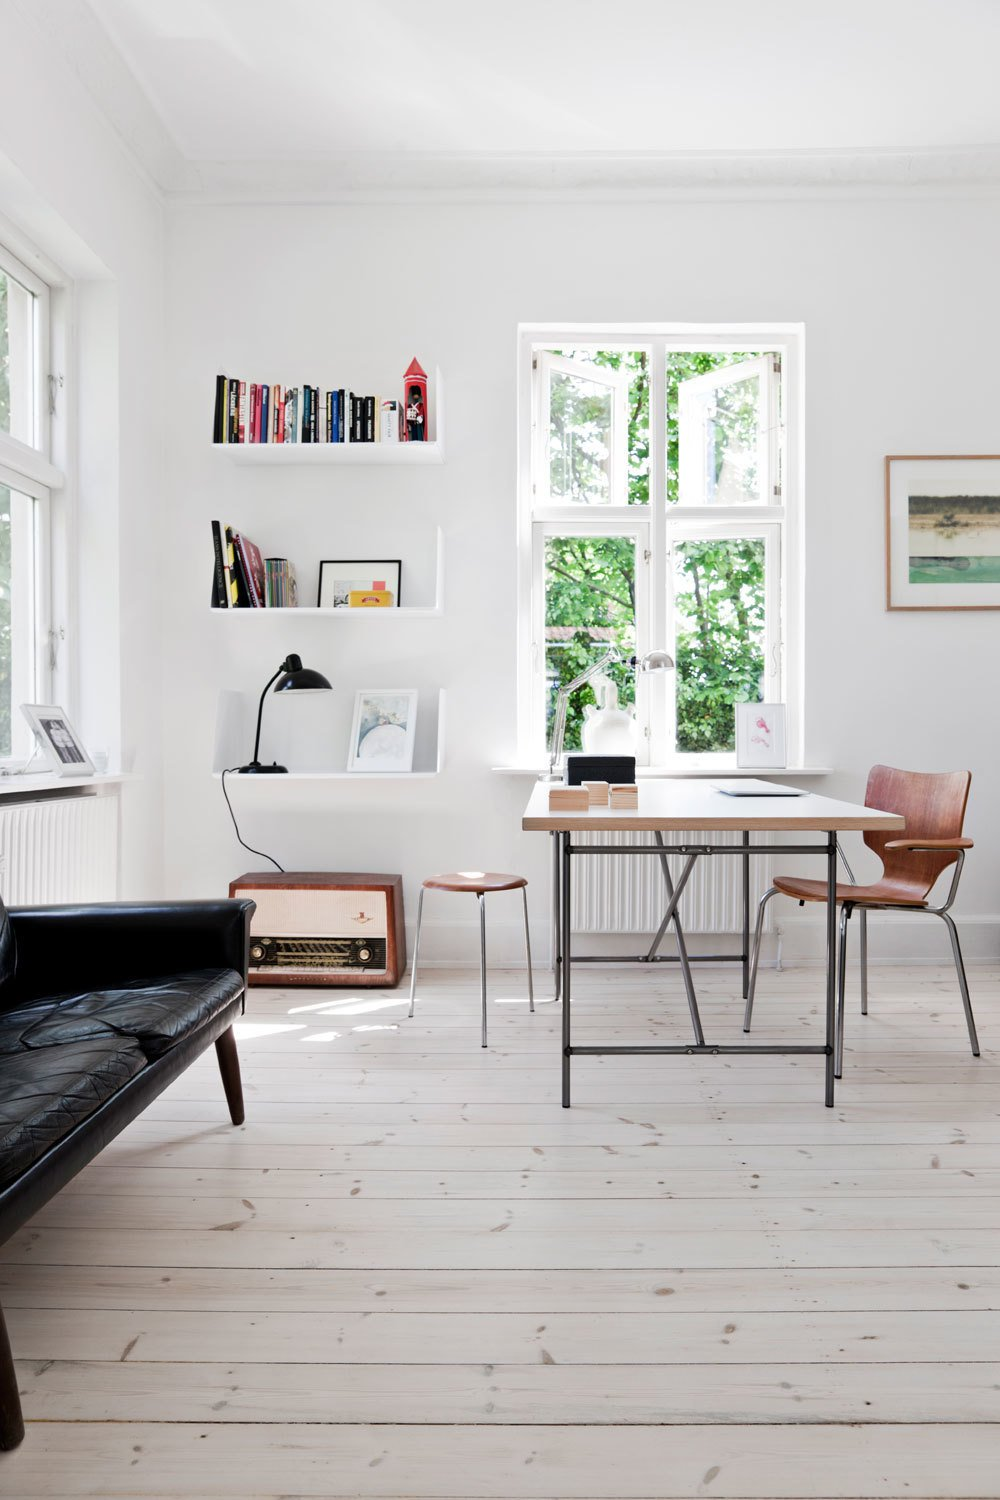 Workspace. House outside Copenhagen by Morten Holtum.  Modern Danish Homes We Love by Aileen Kwun from Studies and workspaces